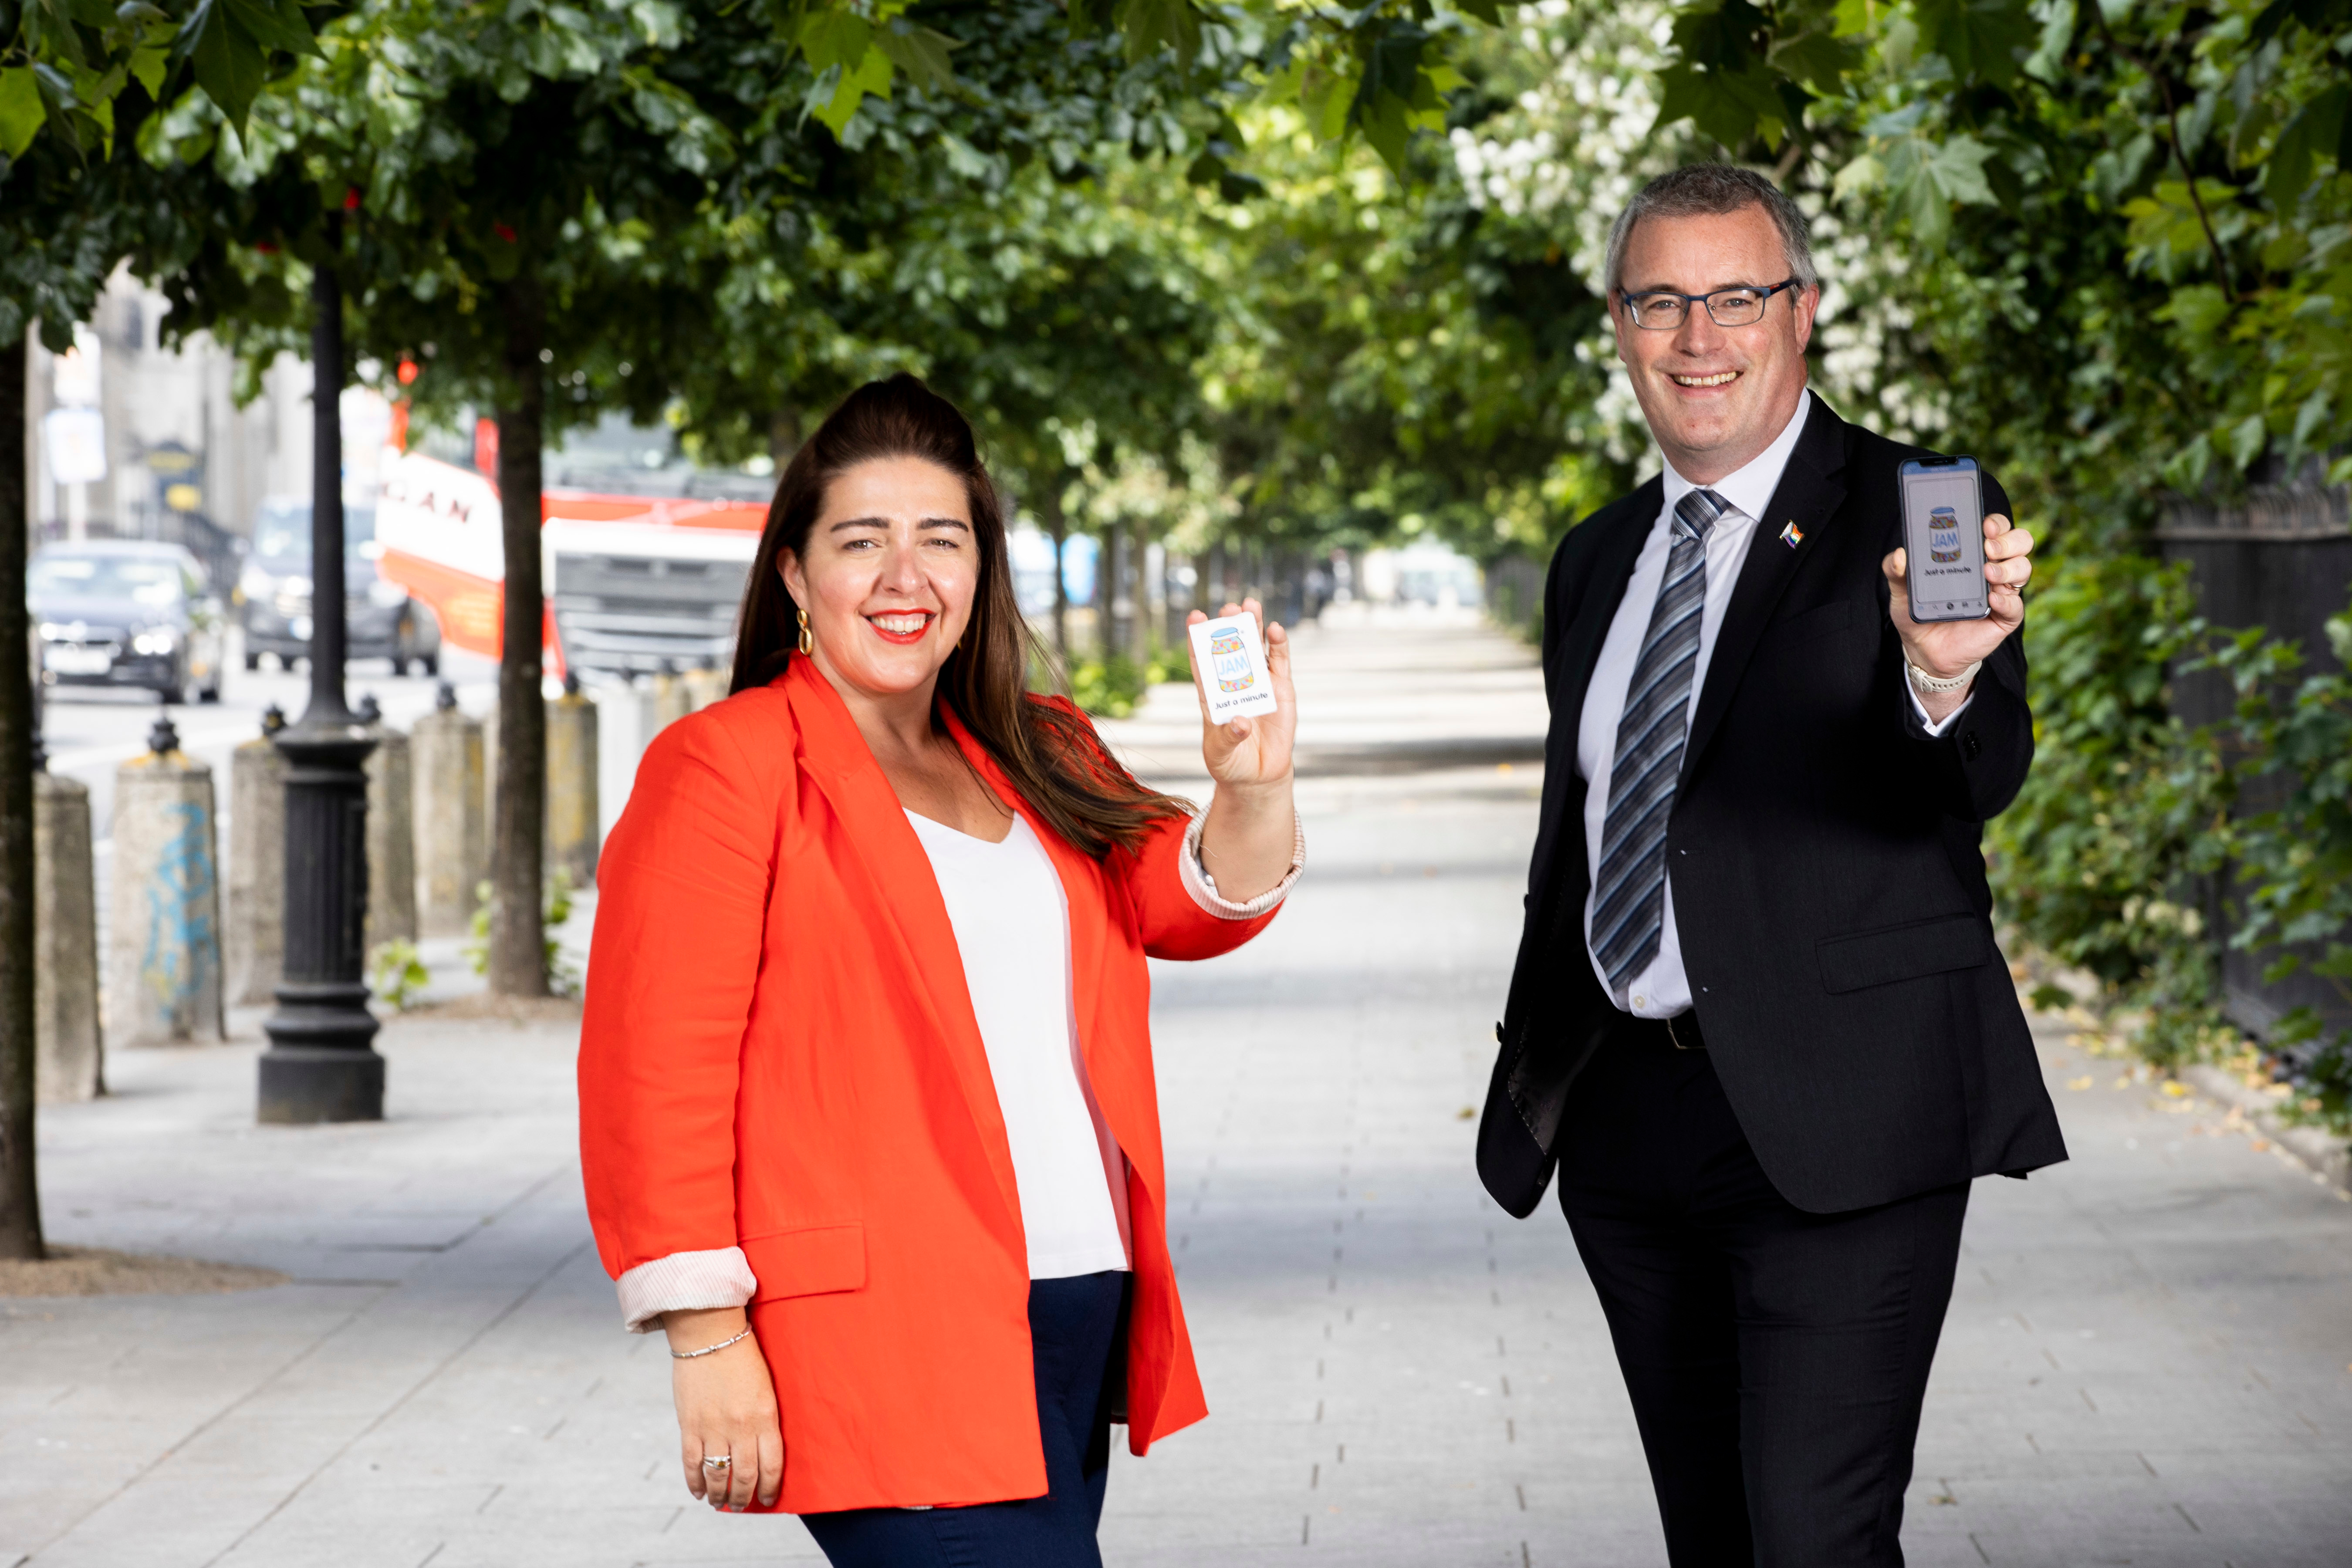 permanent tsb Branch Network joins the JAM Card family